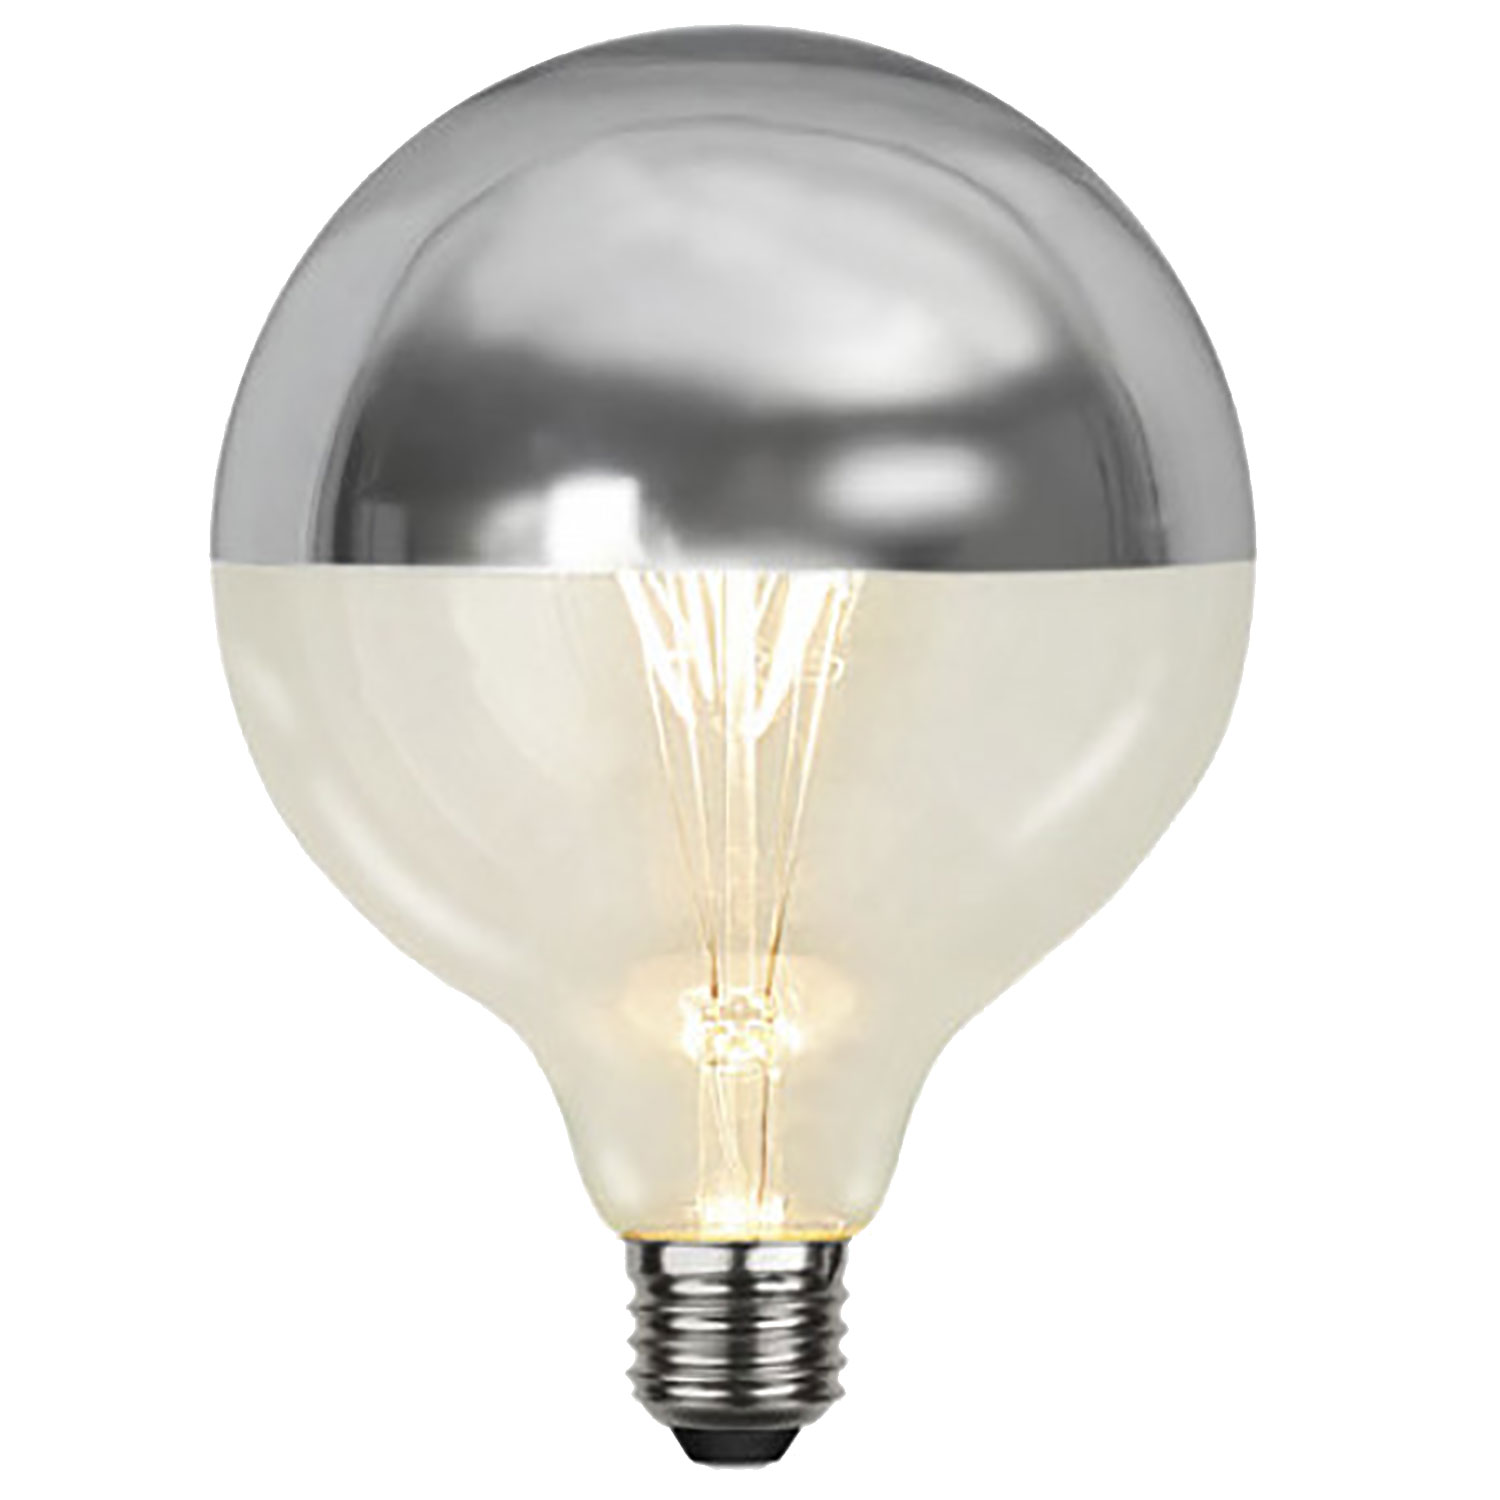 LED-lampa E27 G125 top coated filament, silver